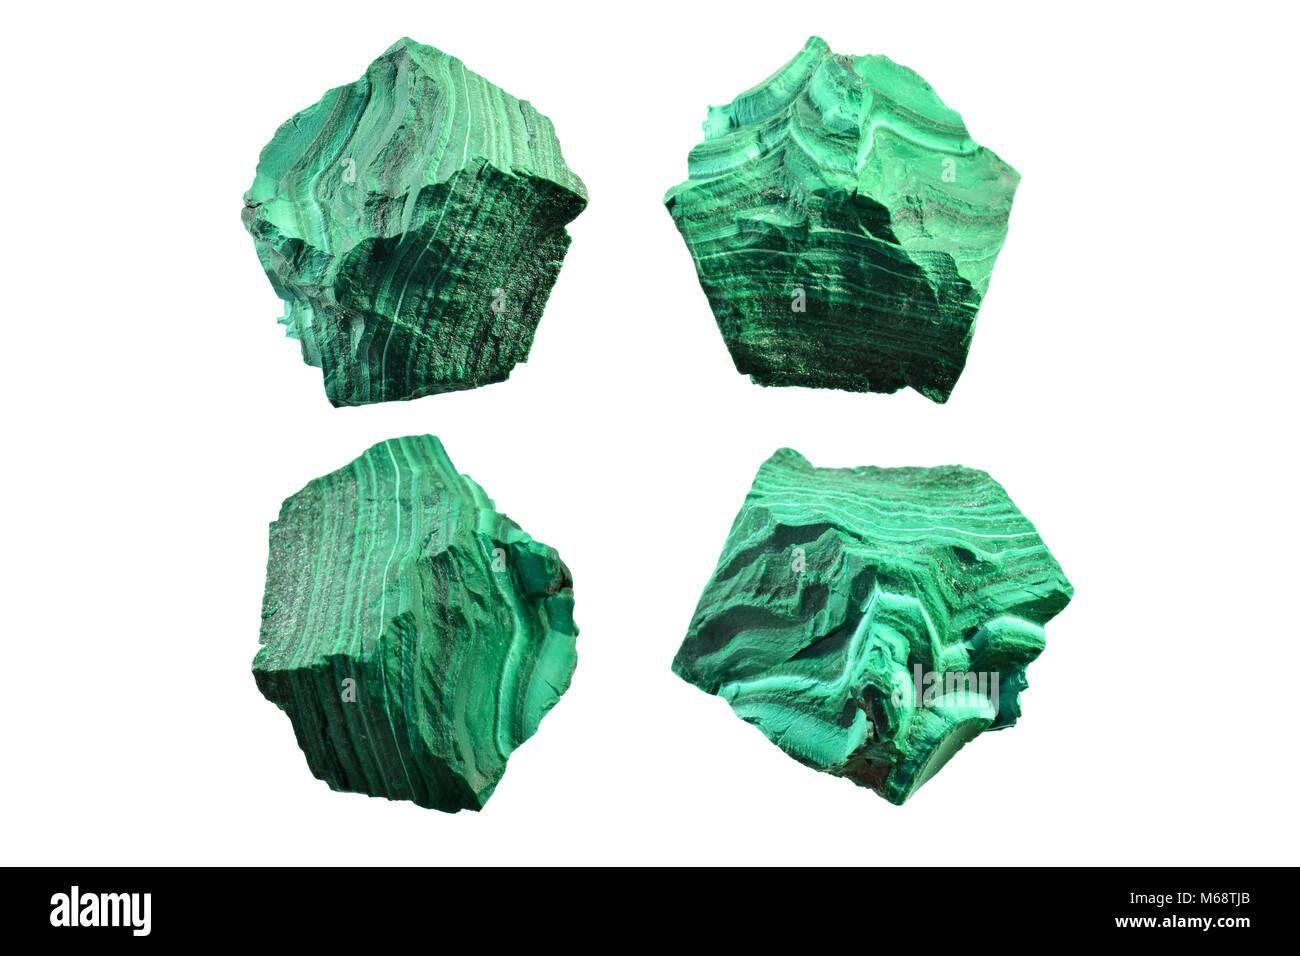 Closeup detail of Malachite, green mineral stone isolated on white background. - Stock Image